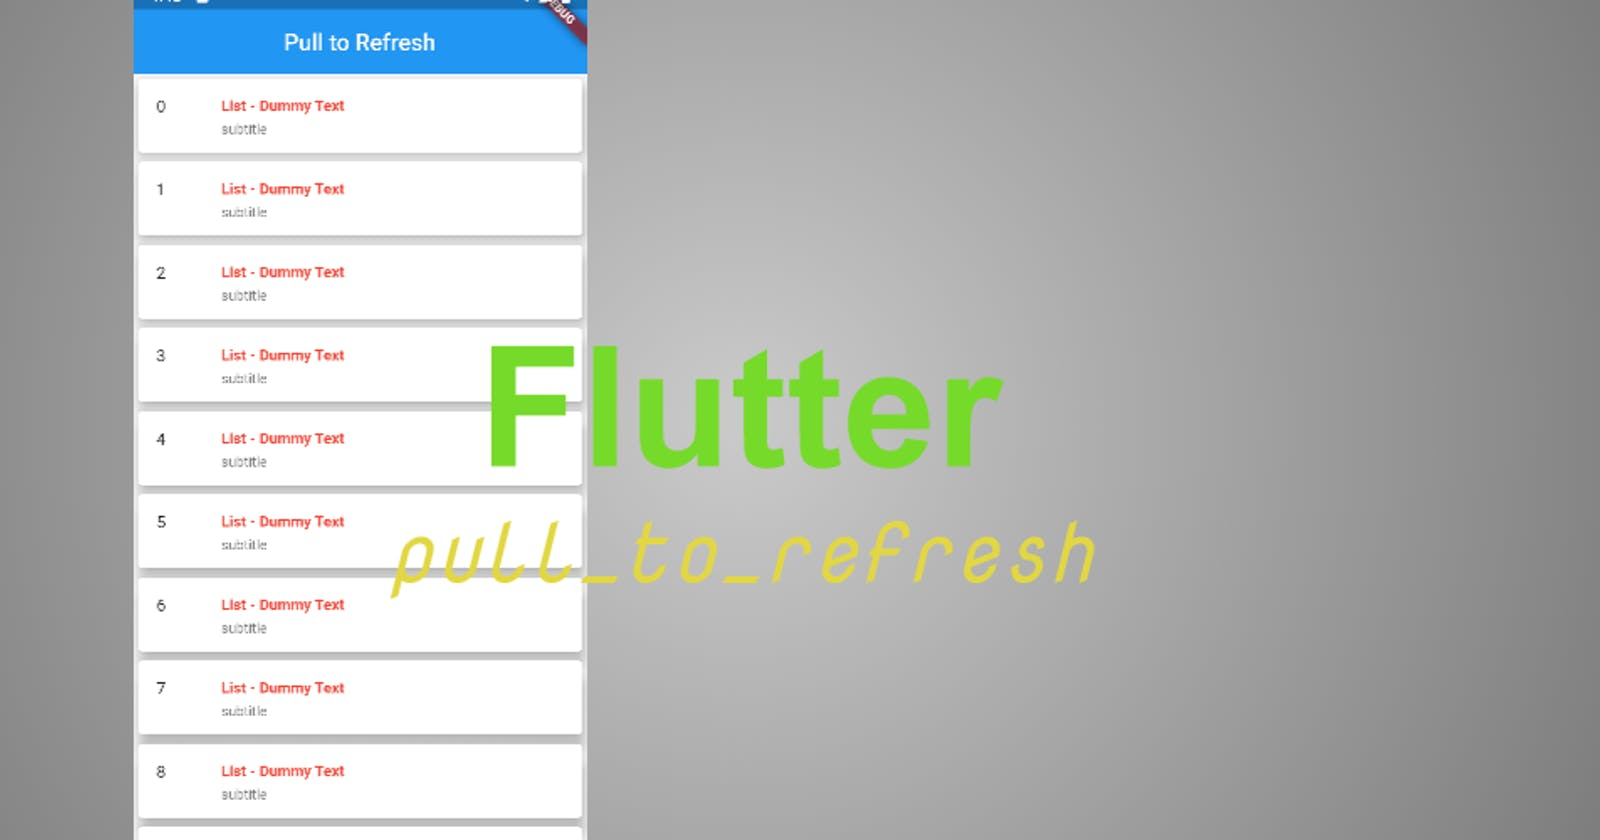 How to implement Pull to refresh in Flutter